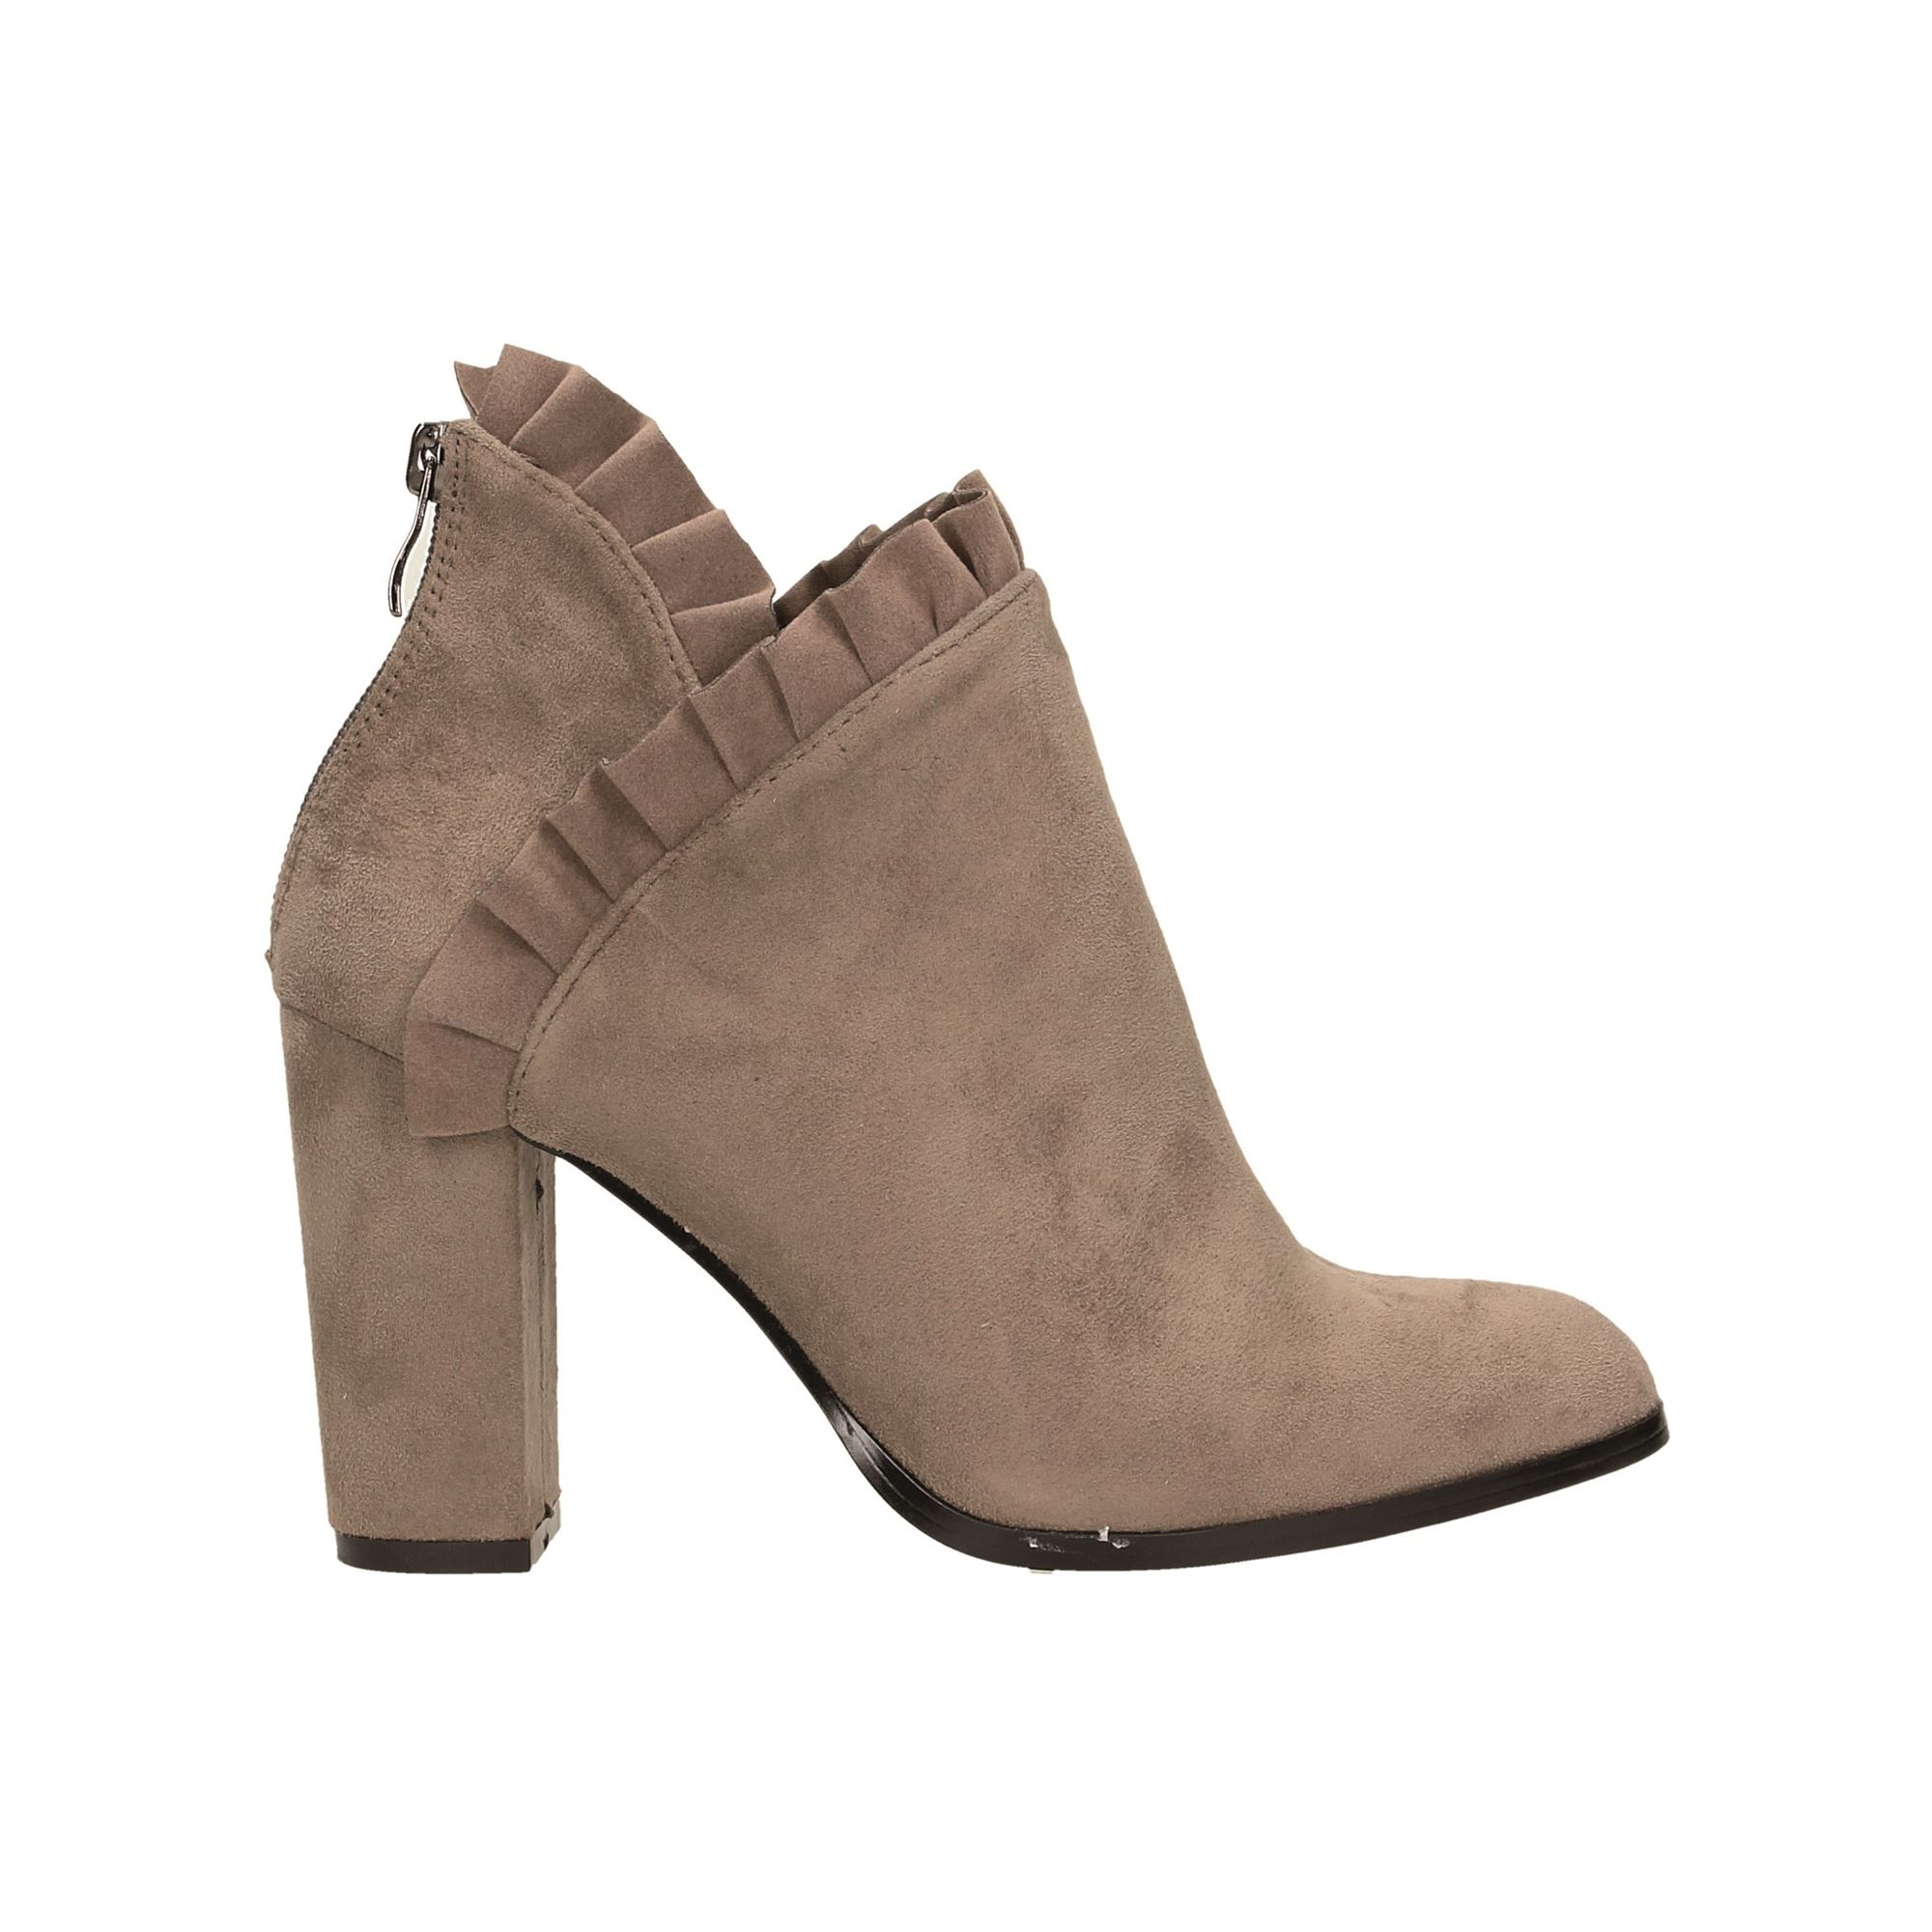 Tata Italia Shoes Woman Stivaletti Taupe 1874X-110